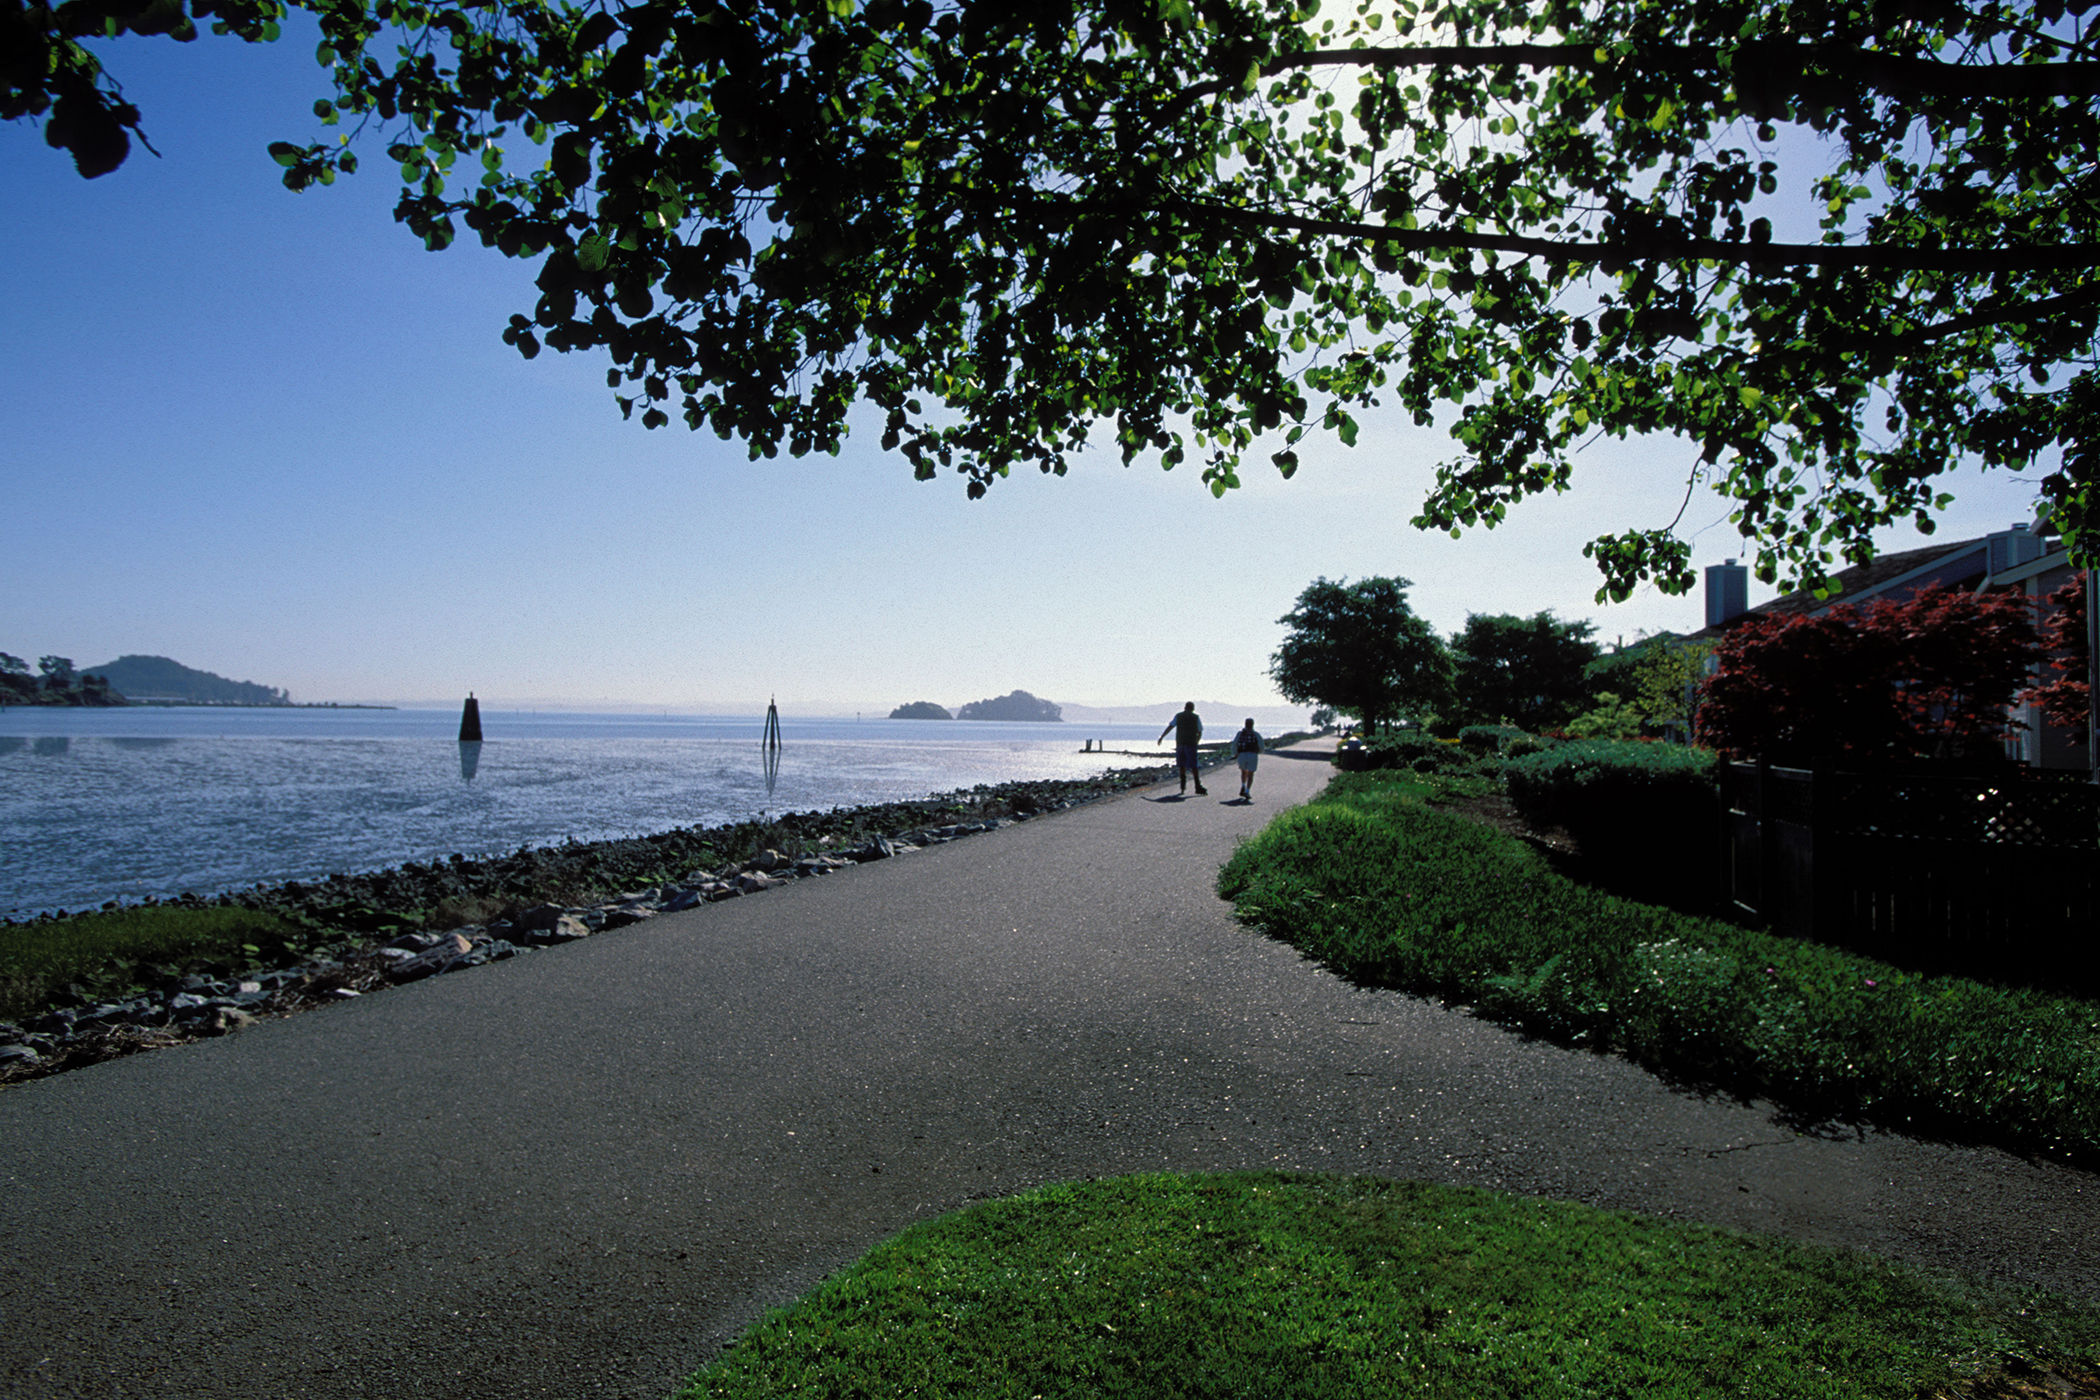 9.San Rafael, Calif.: Whether it's thanks to hiking or beach dwelling or whateverGolden State residents do to stay active, adult obesity levels are lower than most other places in the U.S.